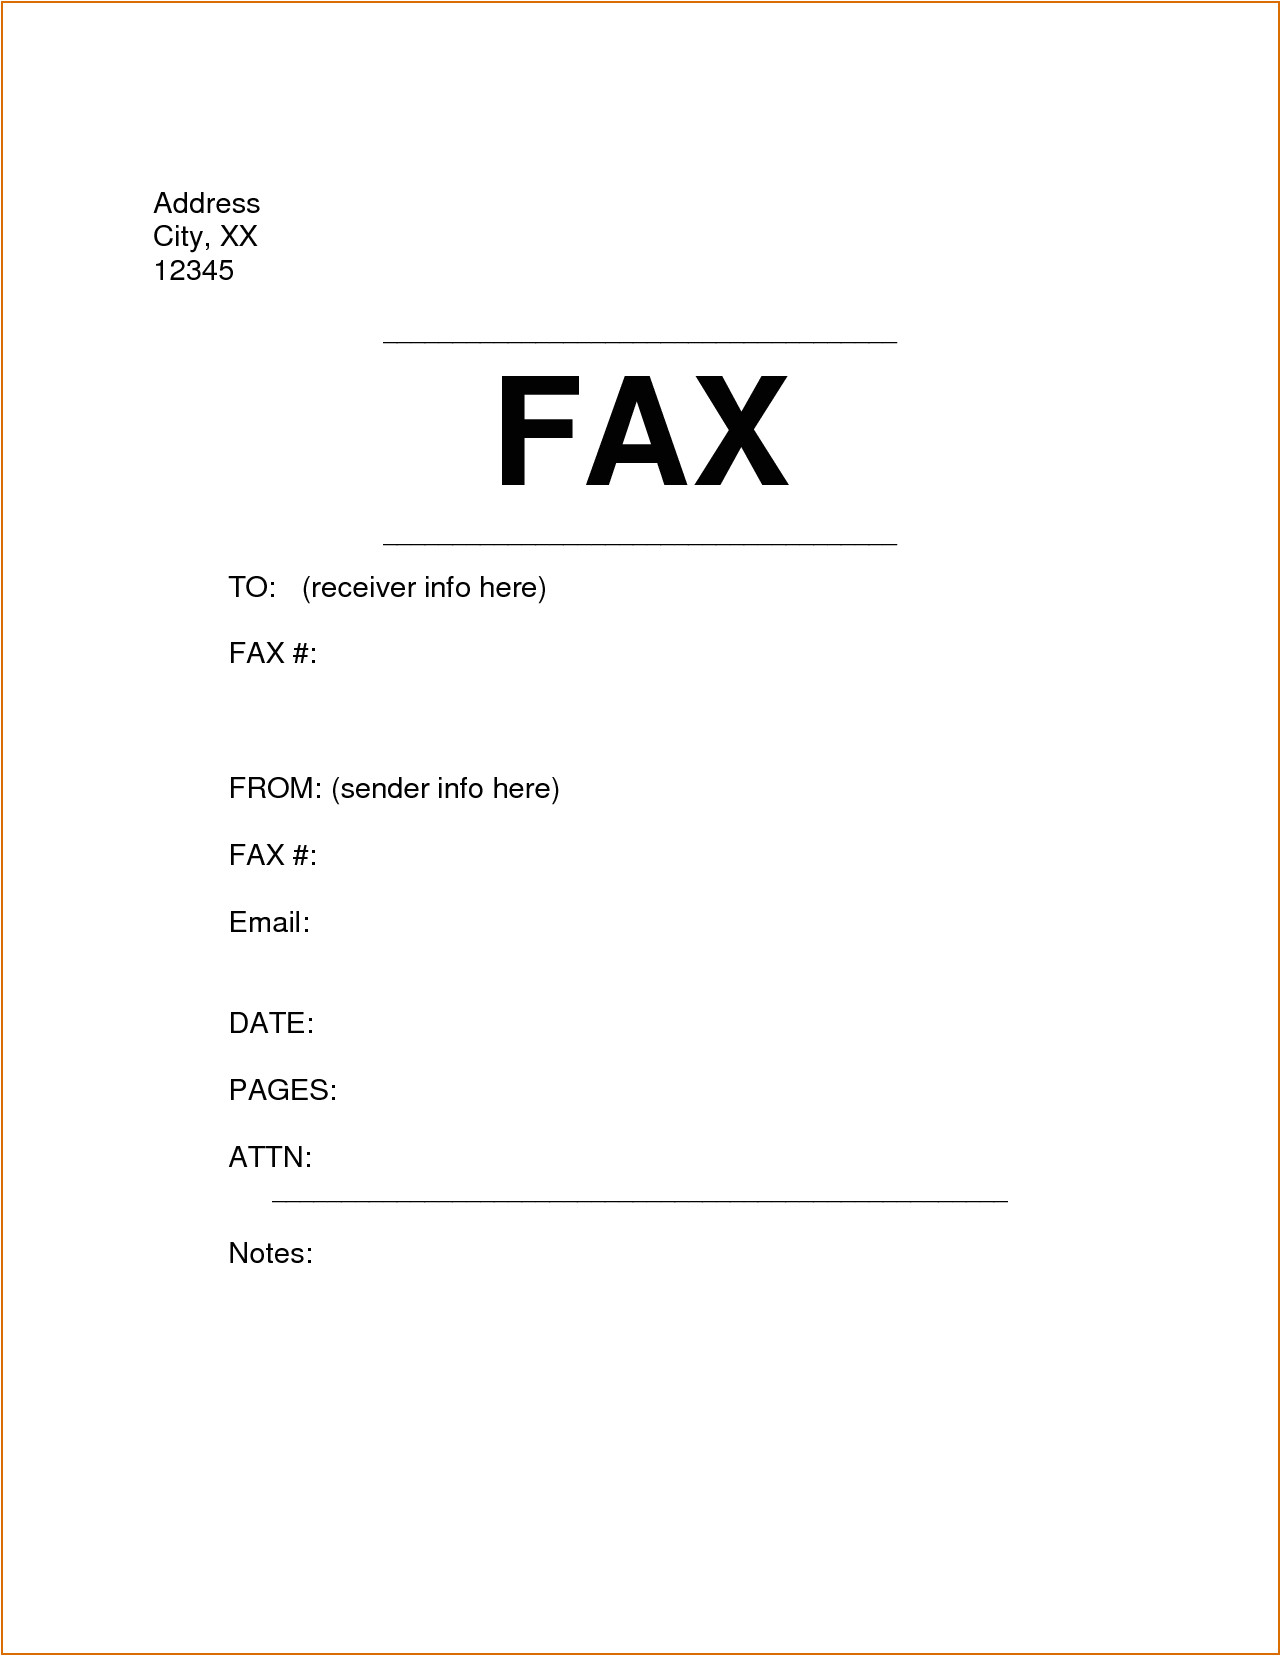 6 fax cover sheet format